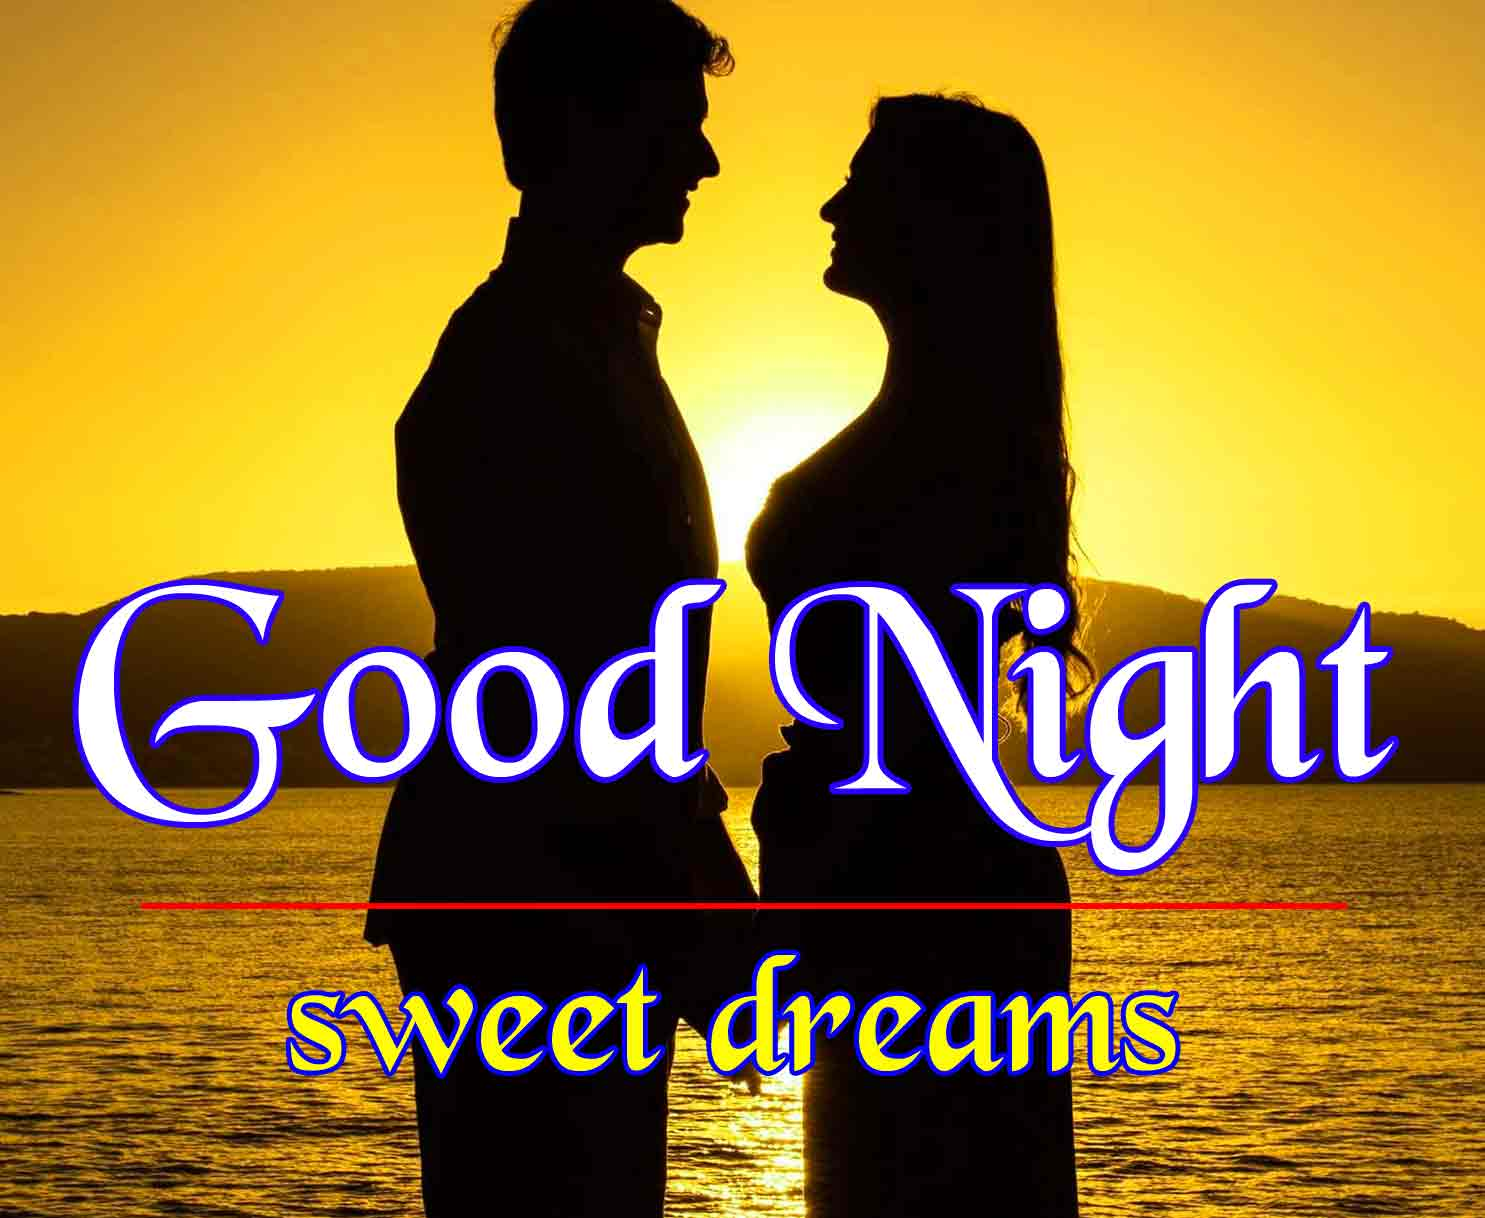 Good Night Wallpaper photo for Romantic Love Couple